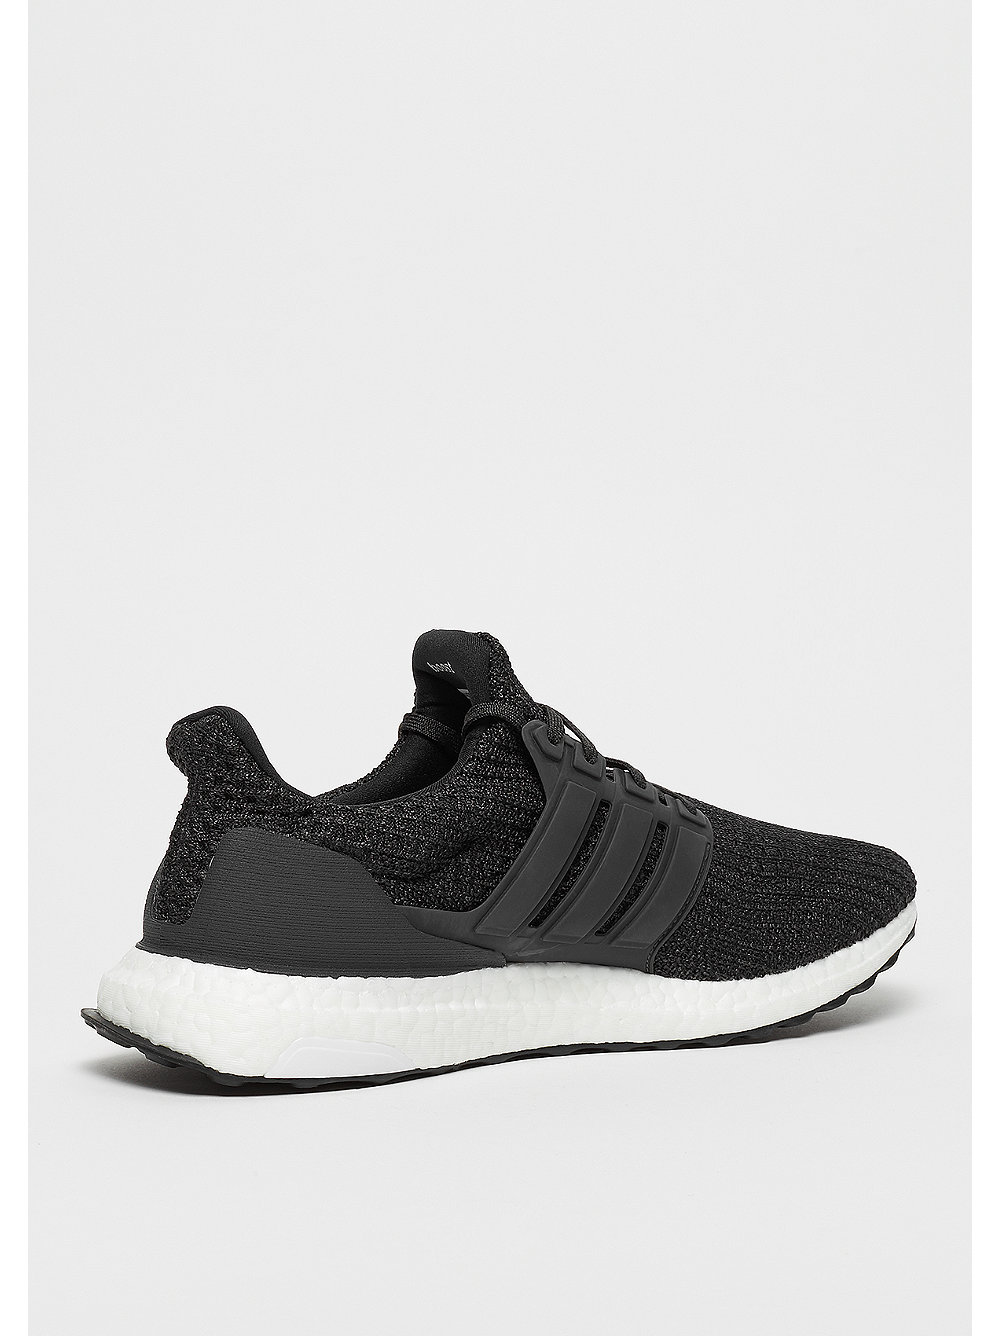 Da Sneakers Trainers Antracite Corsa Running Ultraboost Primeknit Scarpe Adidas WHIYED29